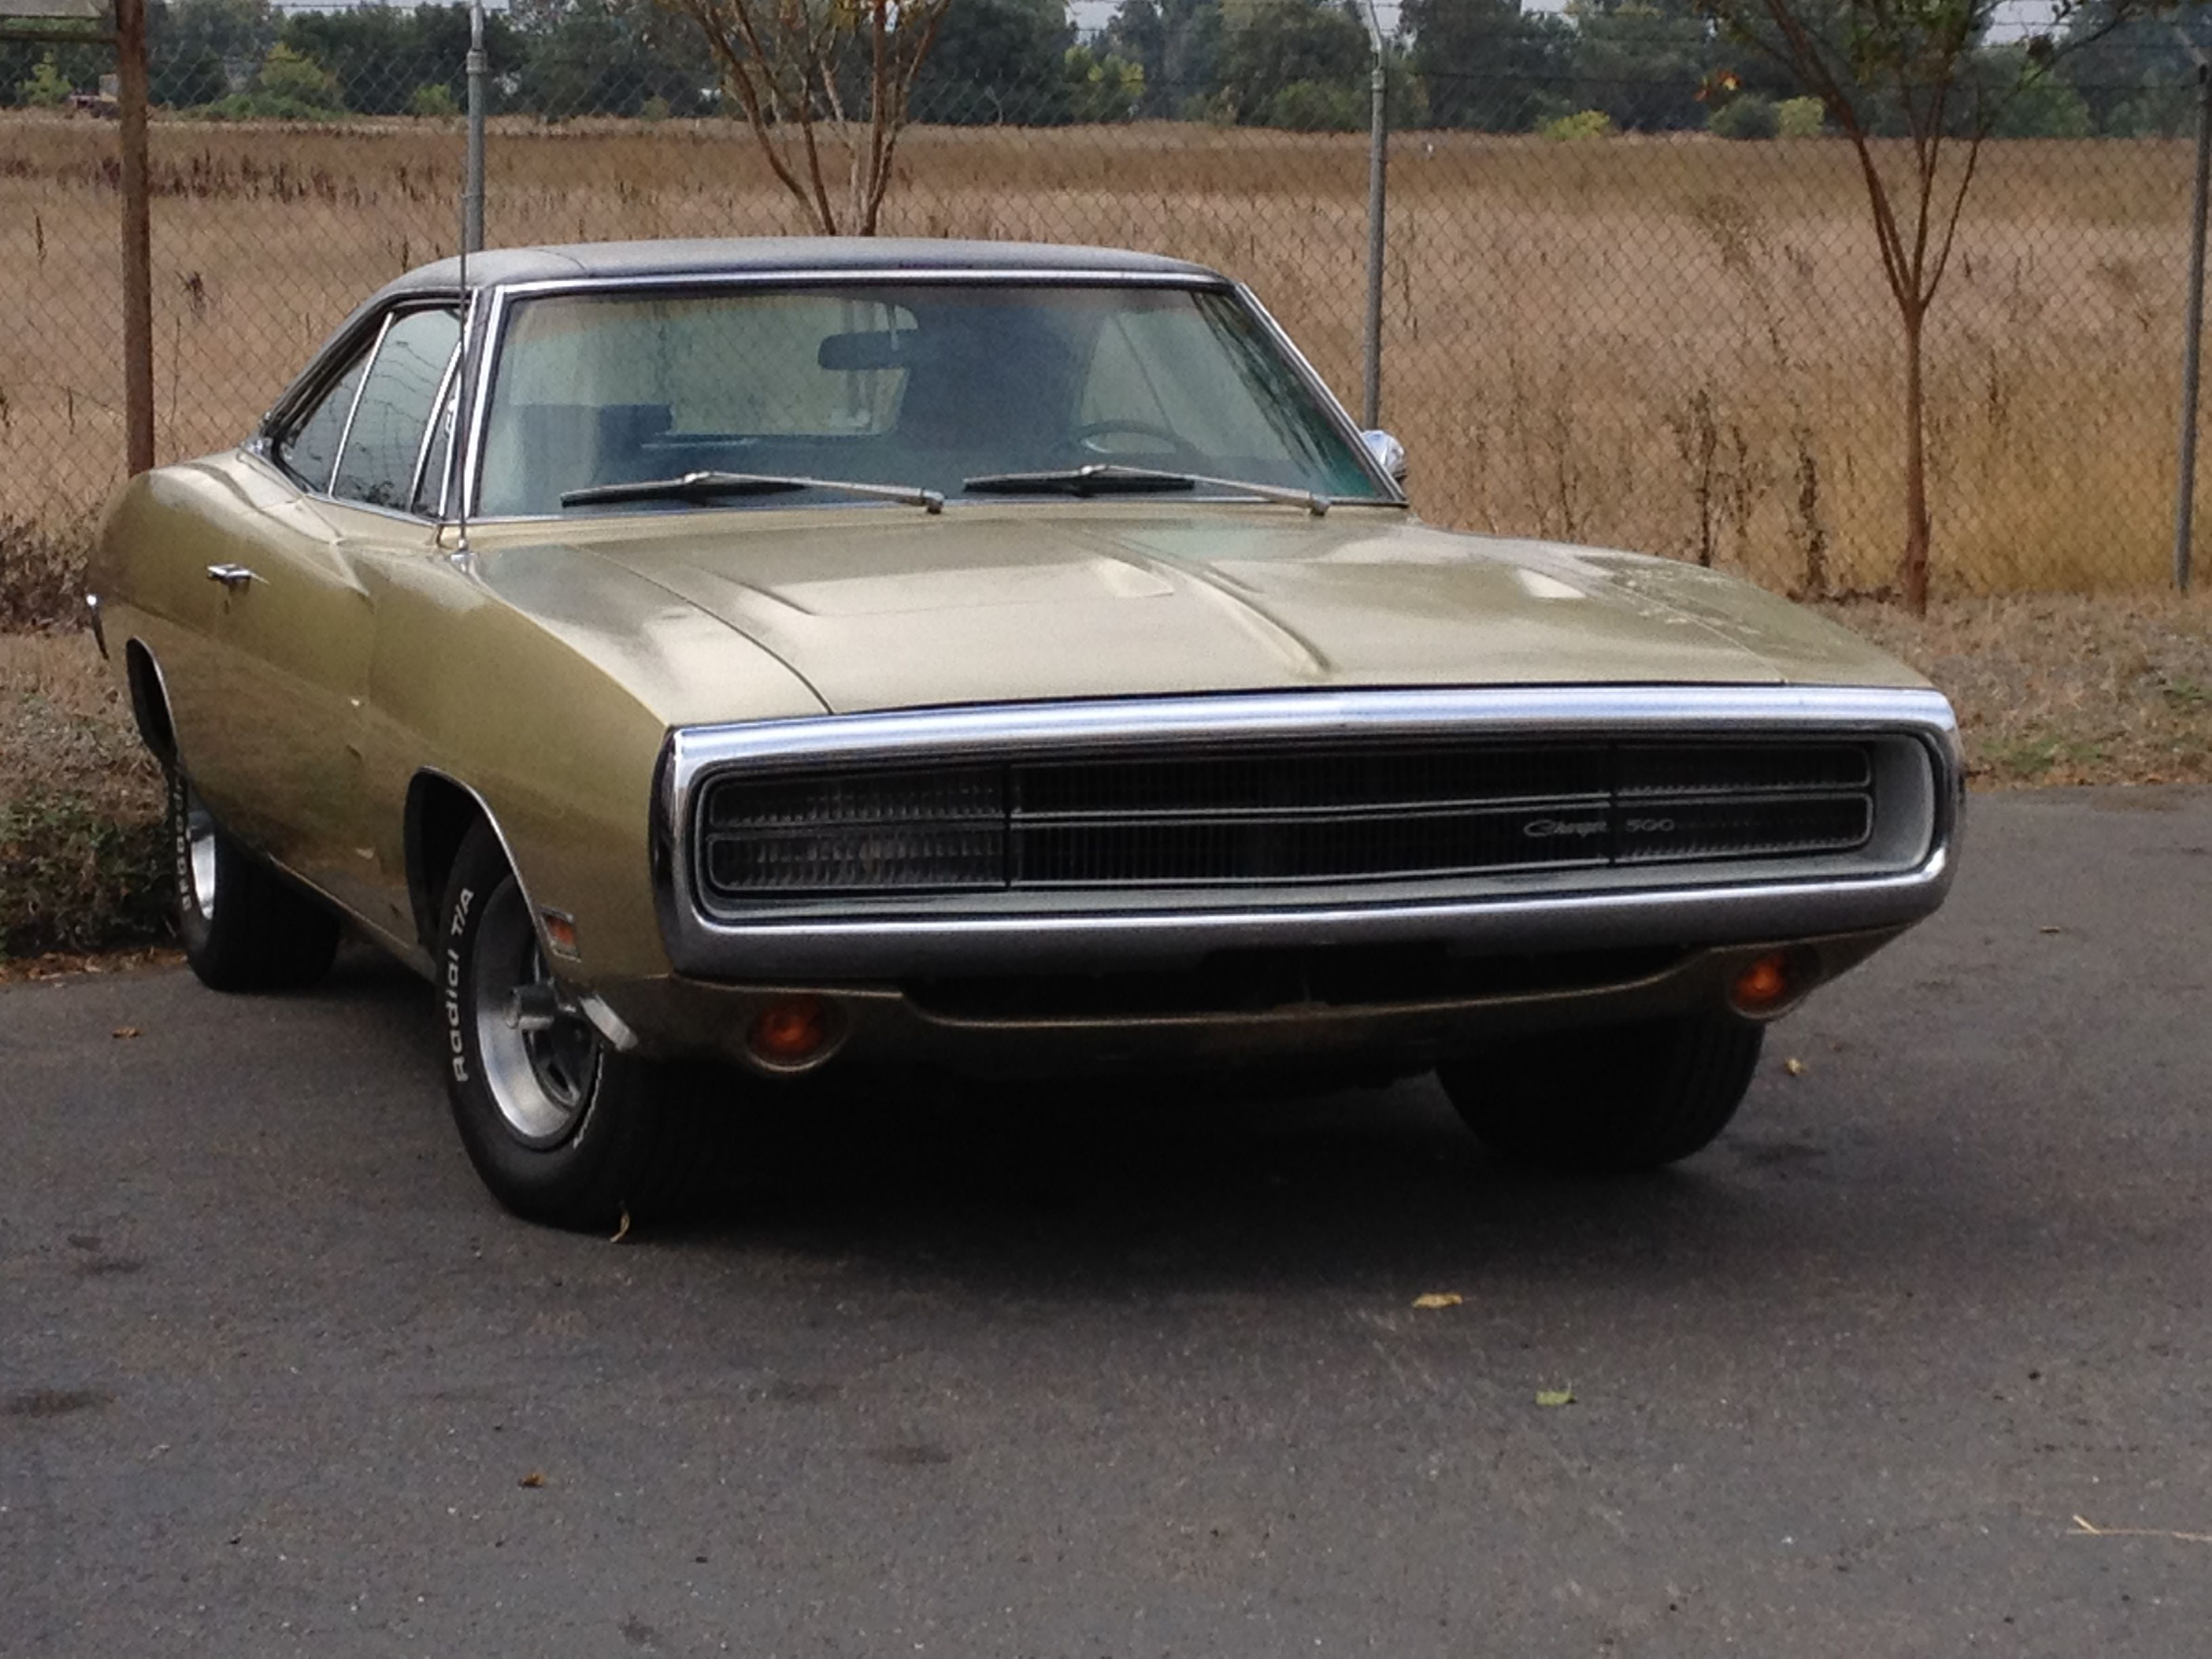 My Charger  1970 Dodge Charger 500  383 Magnum, 4 barrel carb, 727